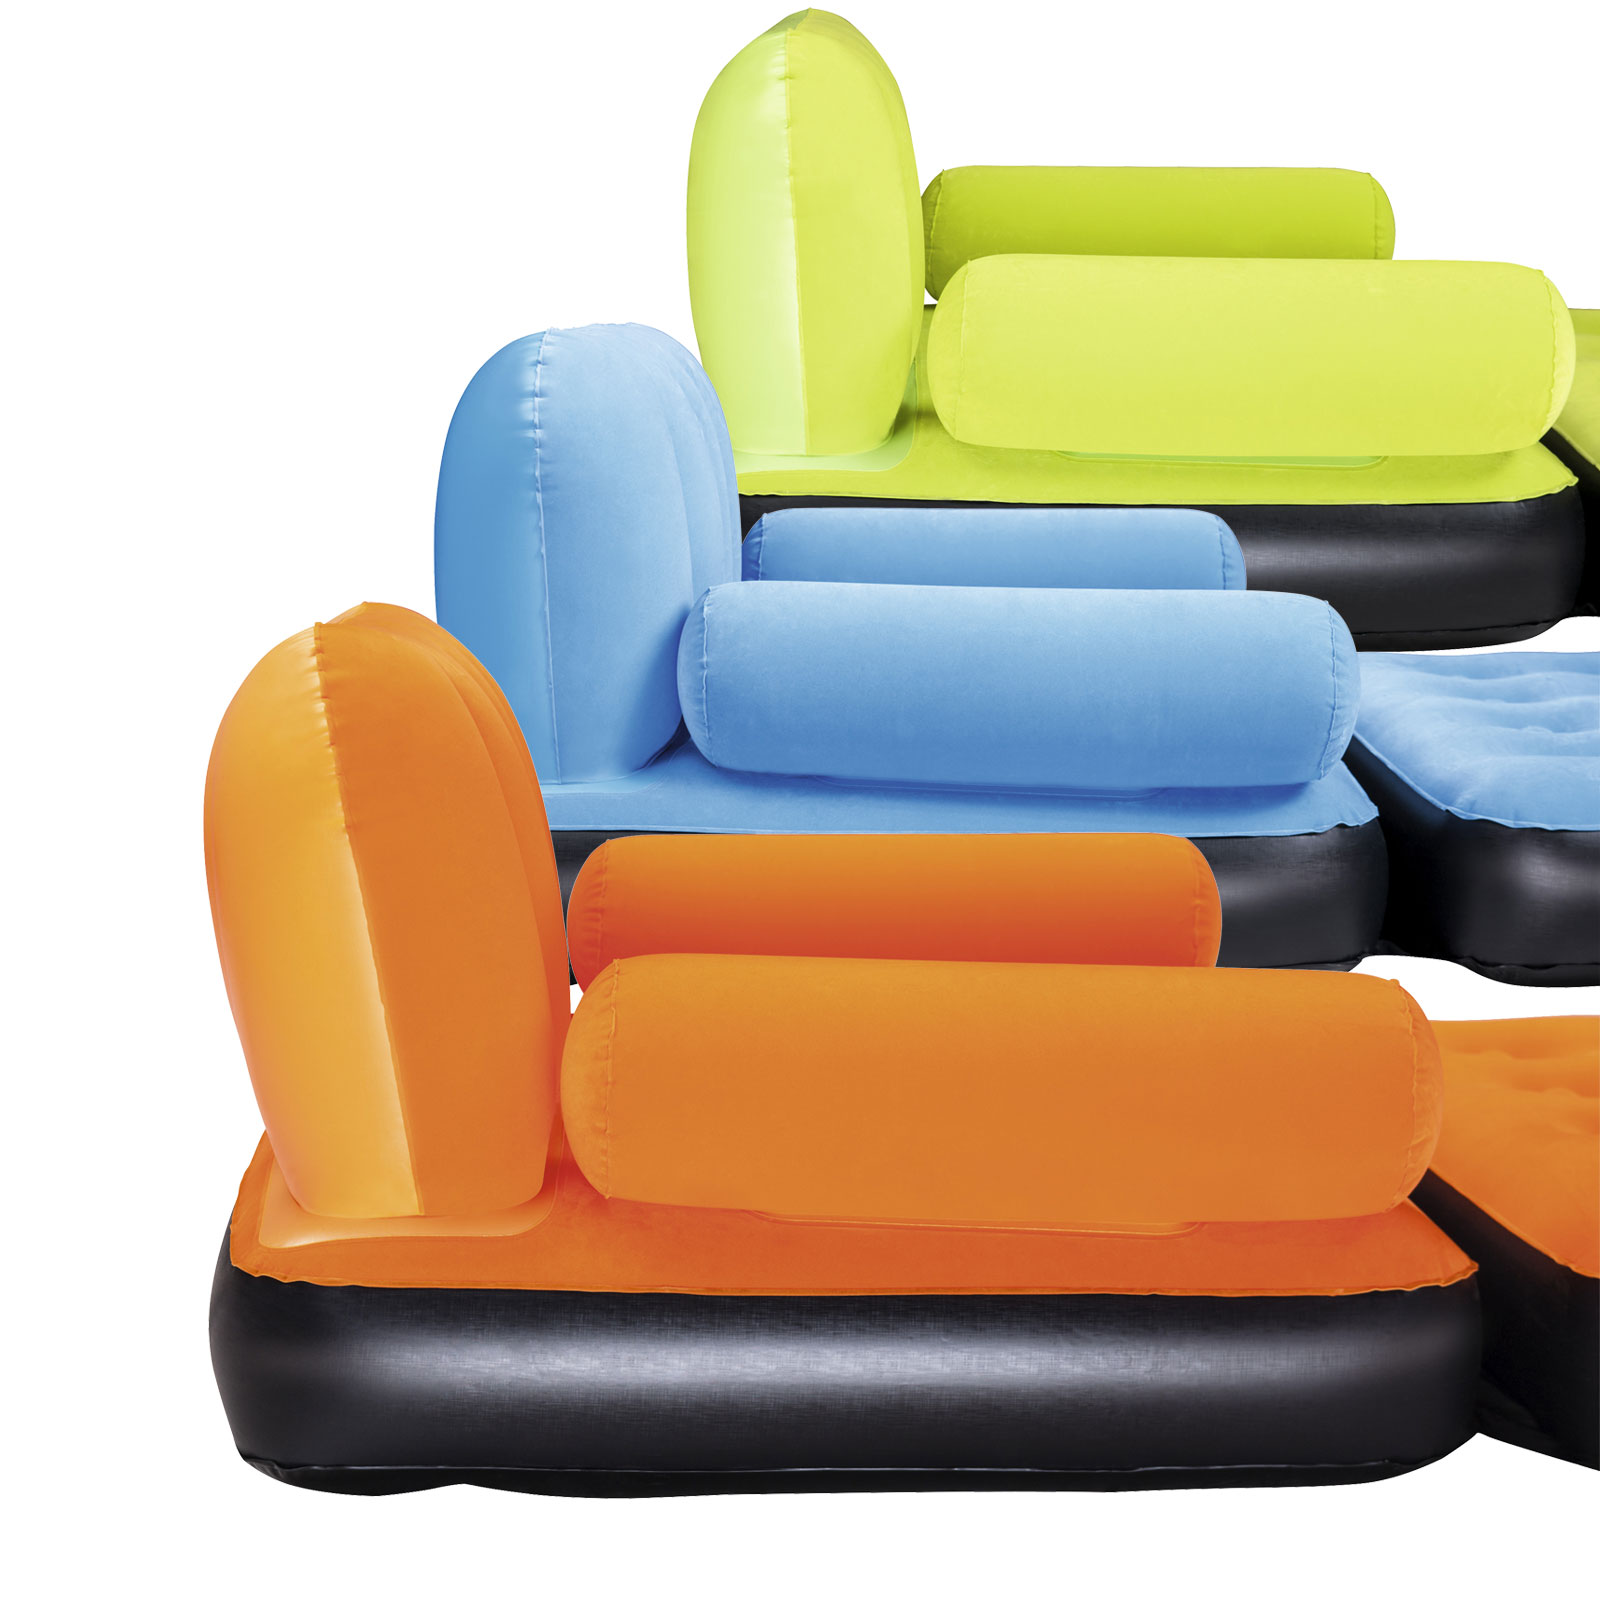 Bestway Air Couch Air Sofa Bed Inflatable Mattresses ...